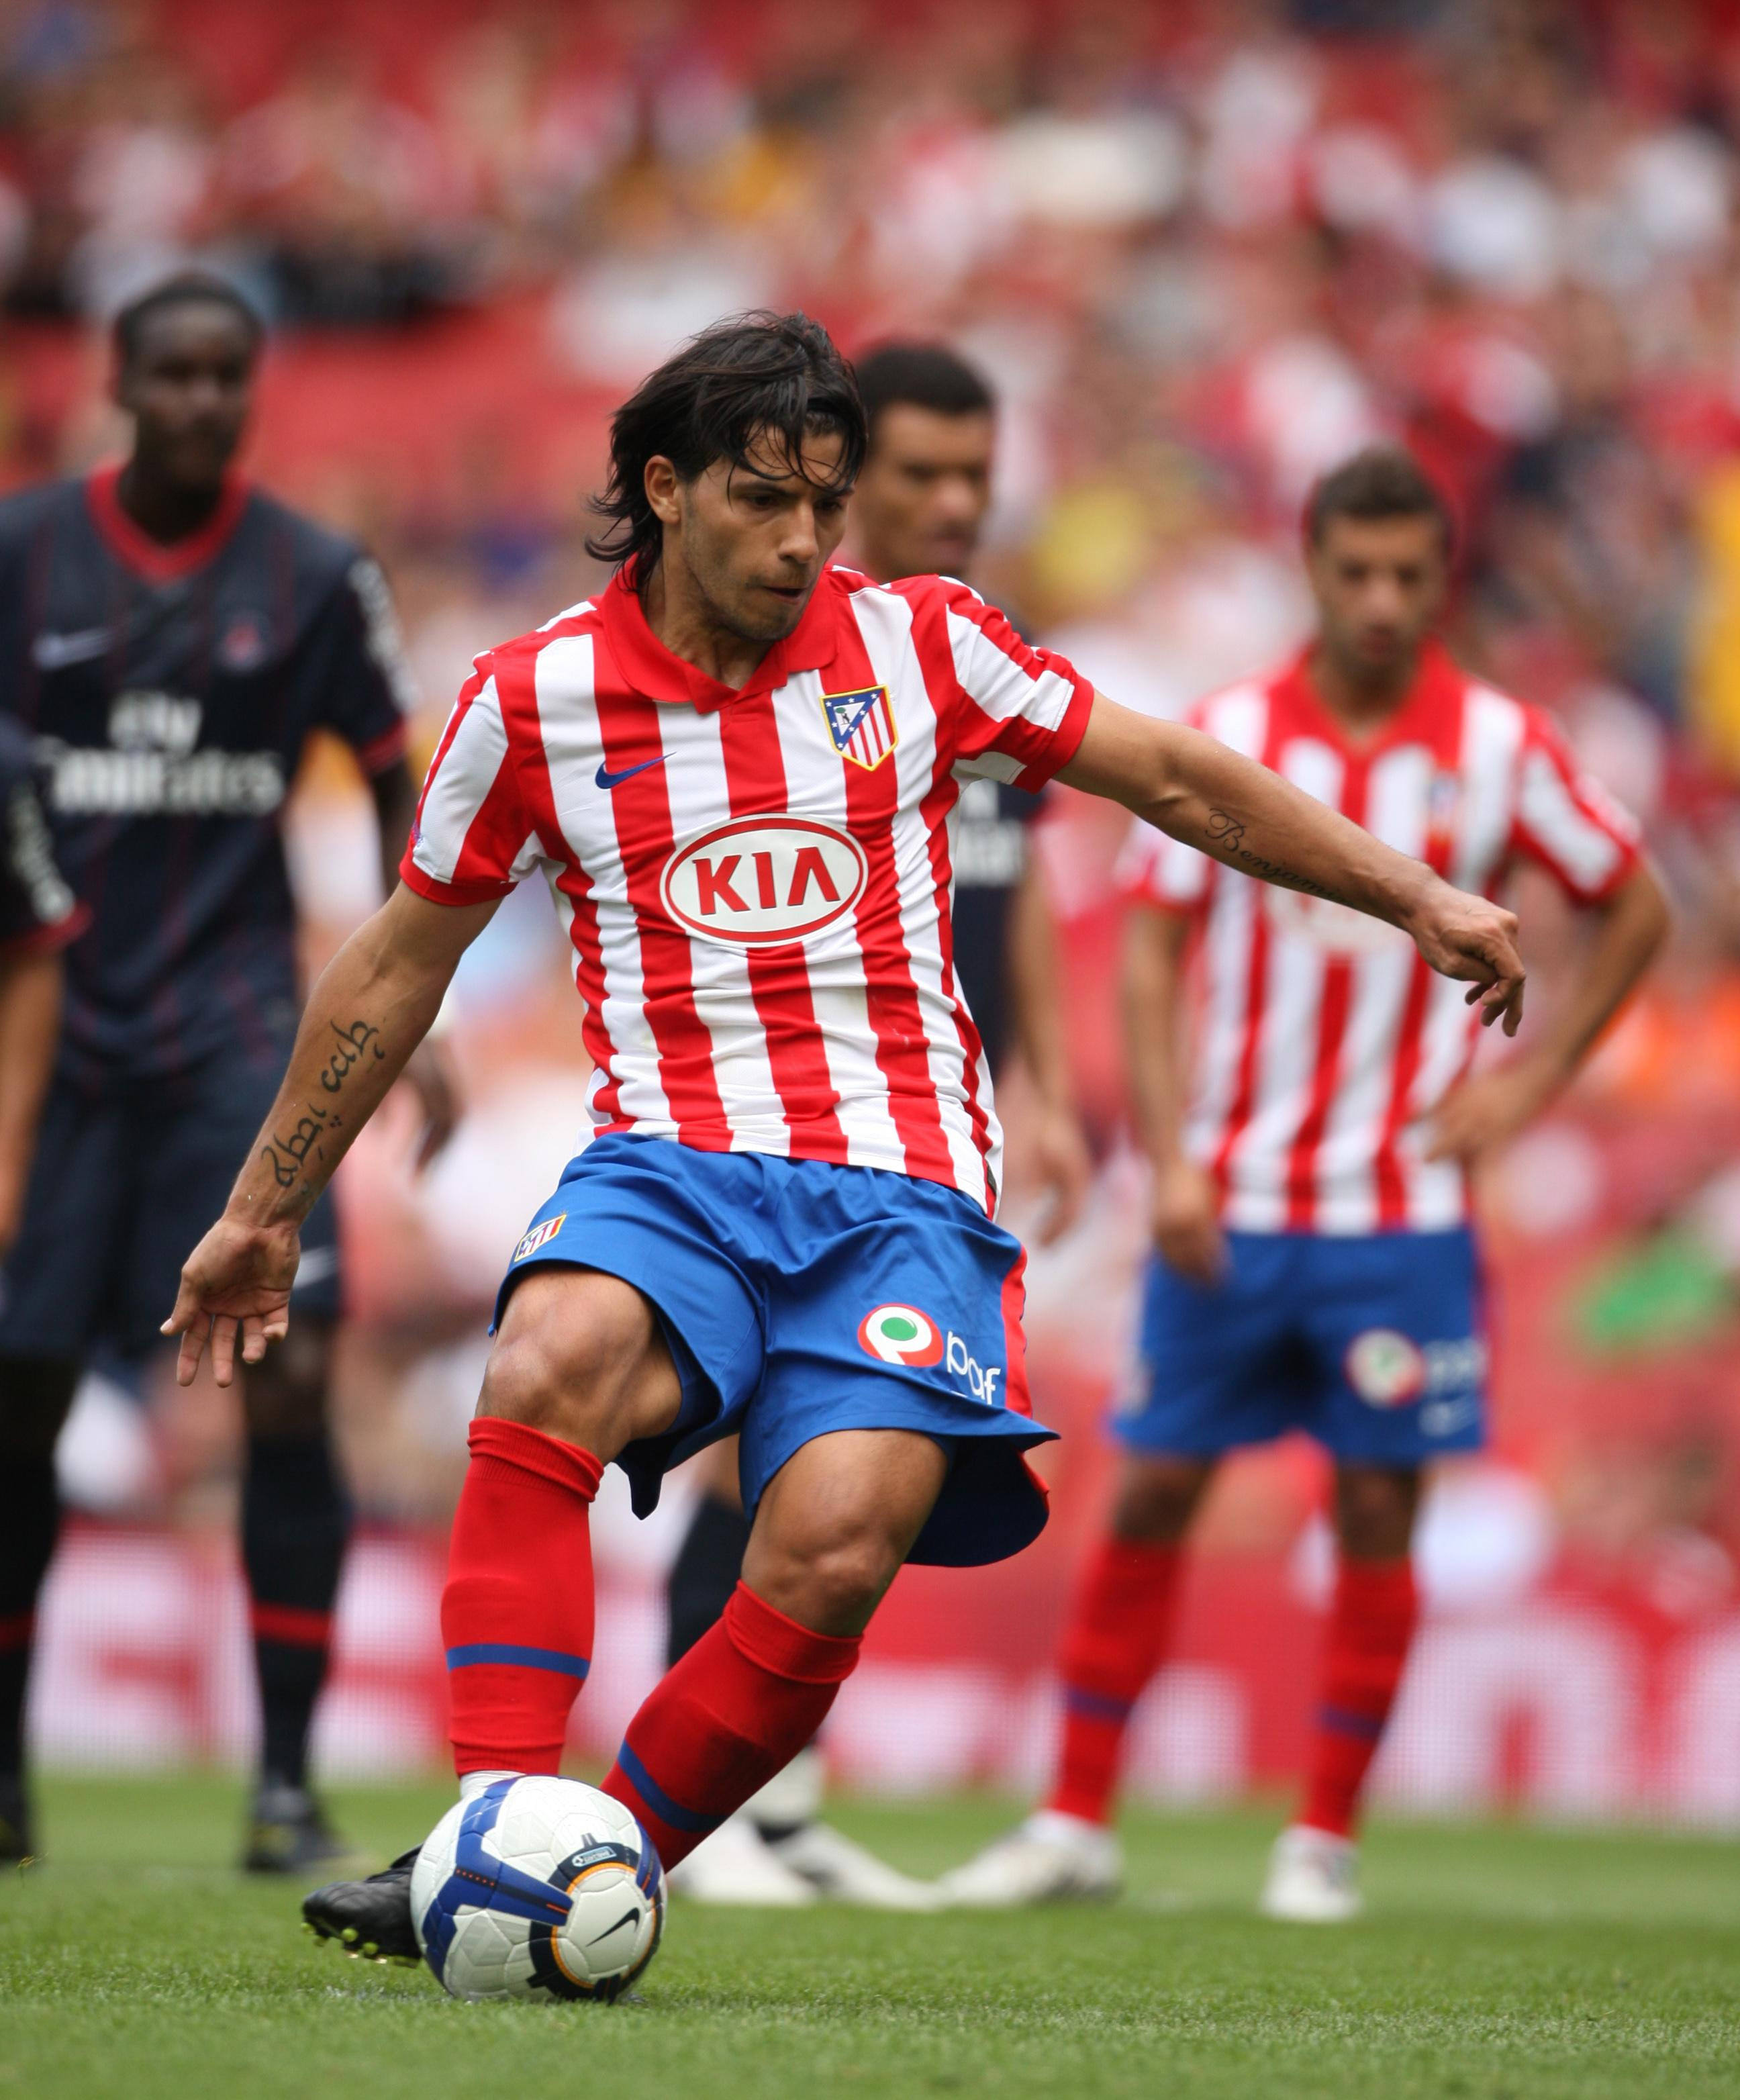 Manchester_City_star_Sergio_Aguero_playing_for_atletico_madrid_football4football